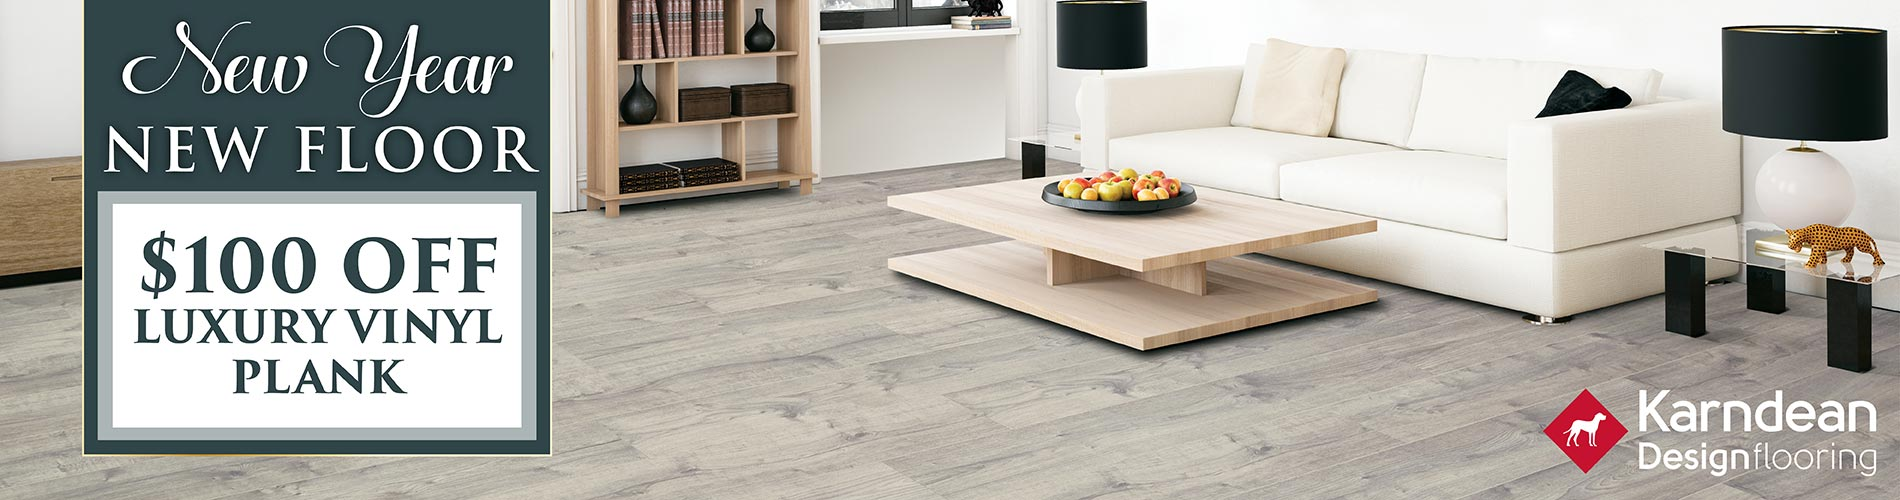 $100 off luxury vinyl plank during our New Year New Floor sale